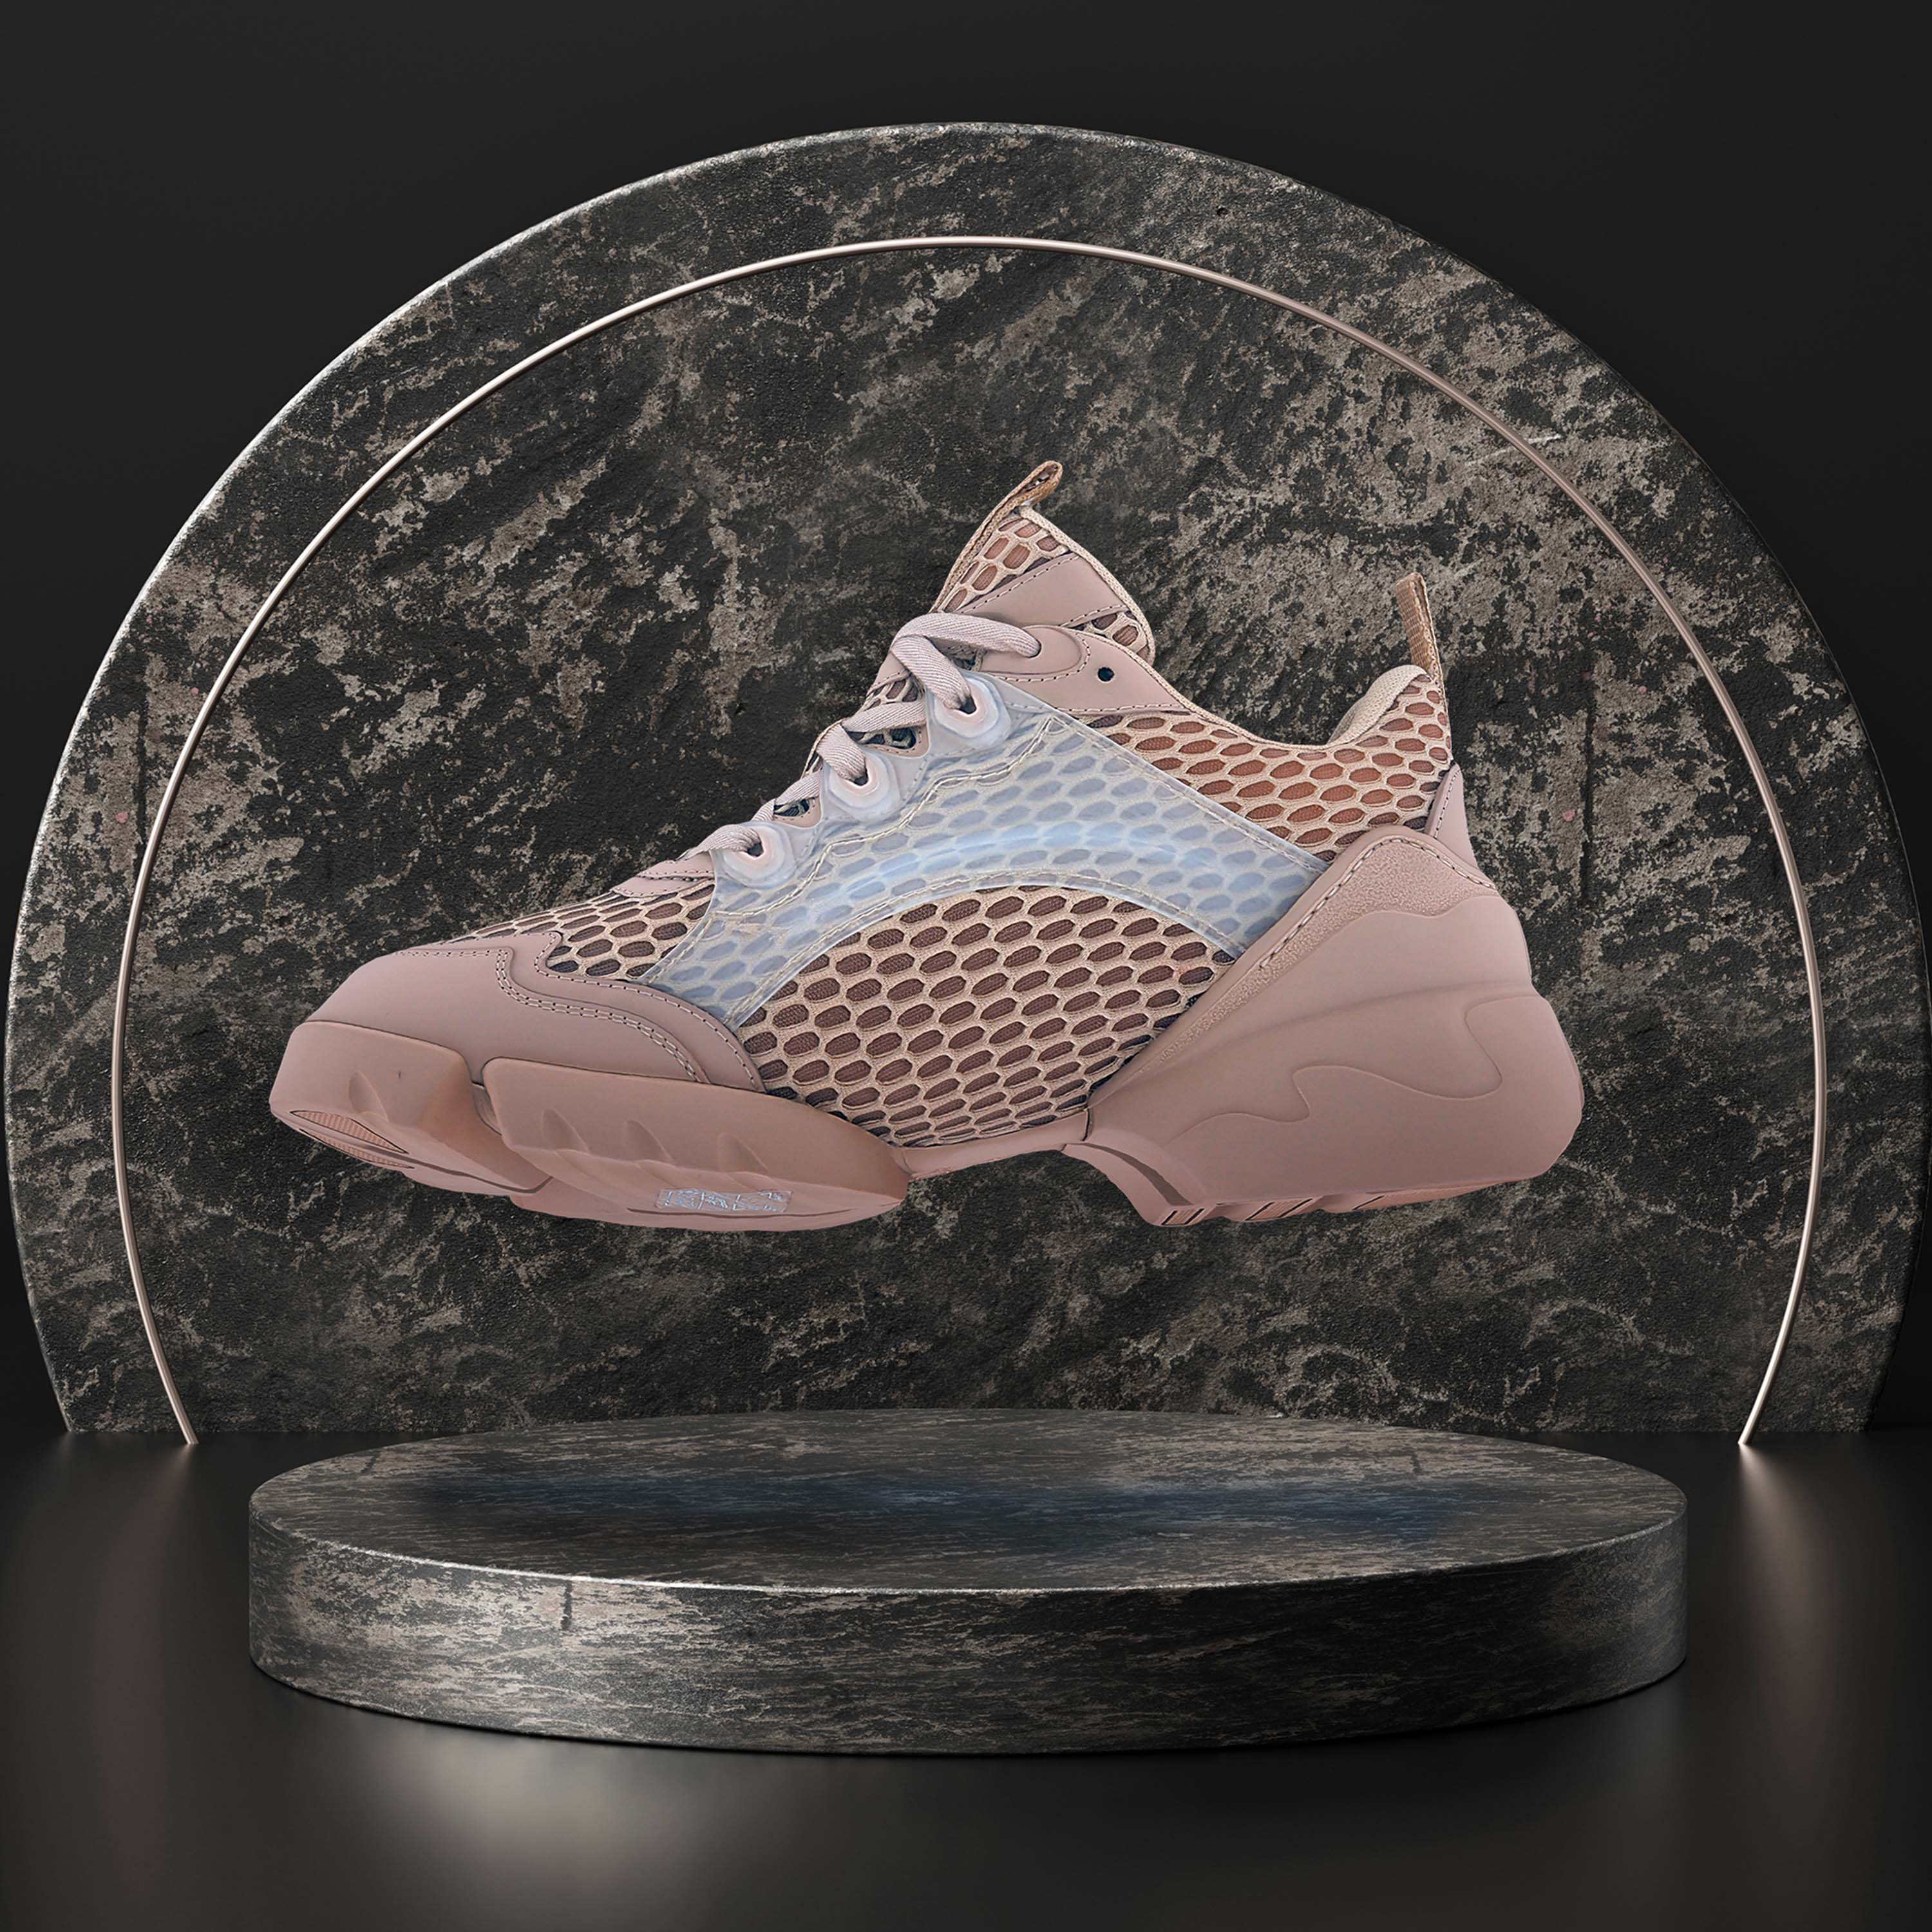 a ray tracing 3D render by Naker shoes